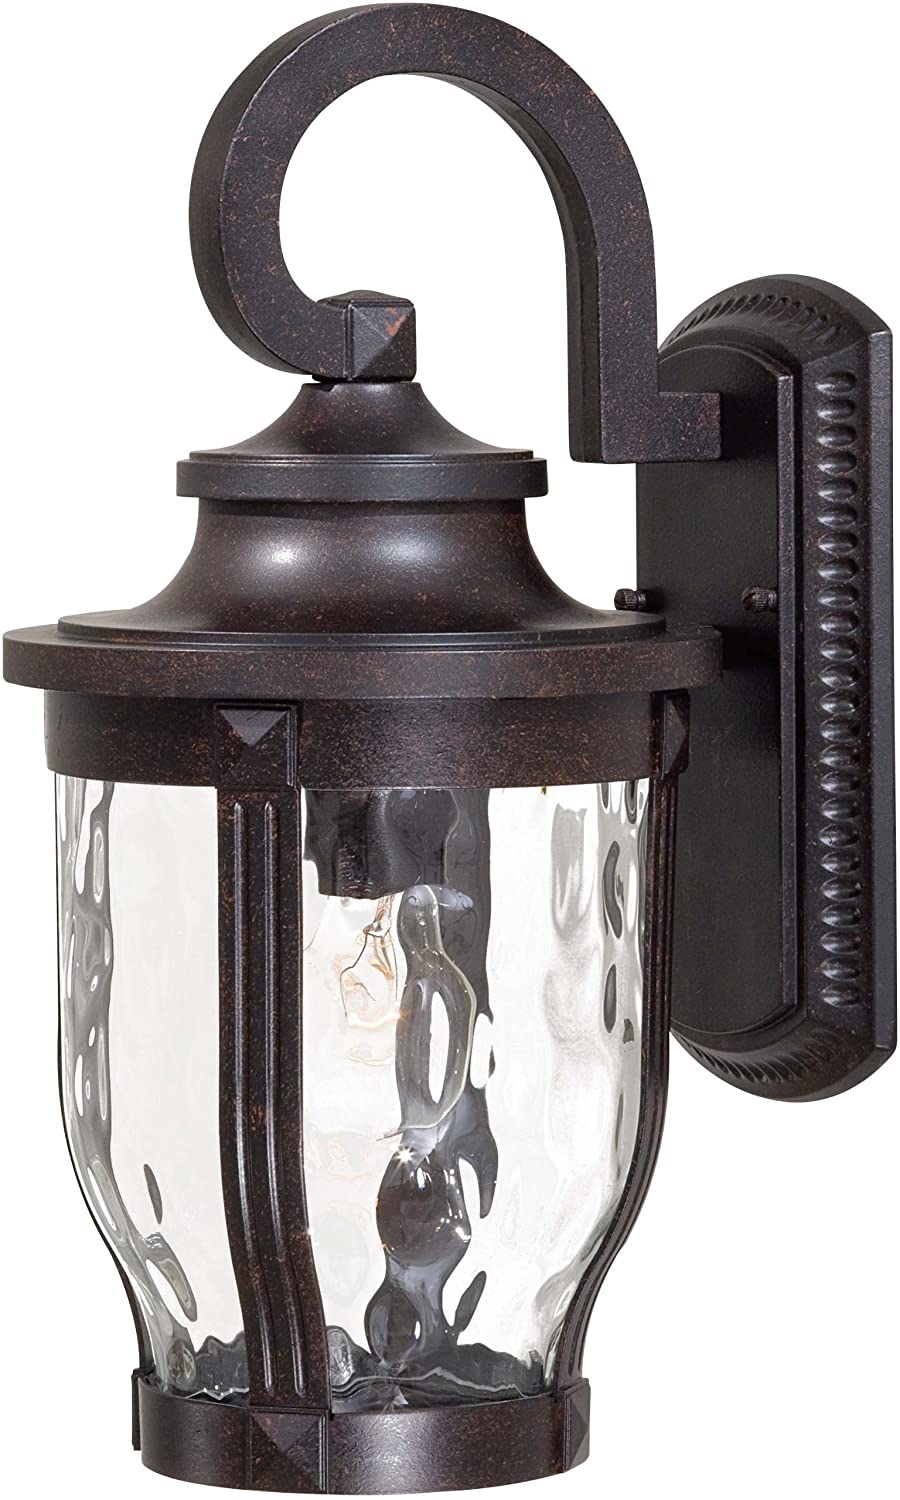 Captivating Minka Lavery Outdoor 8763 166, Merrimack Aluminum Outdoor Wall Sconce  Lighting, 180 Watts, Bronze   Wall Porch Lights   Amazon.com